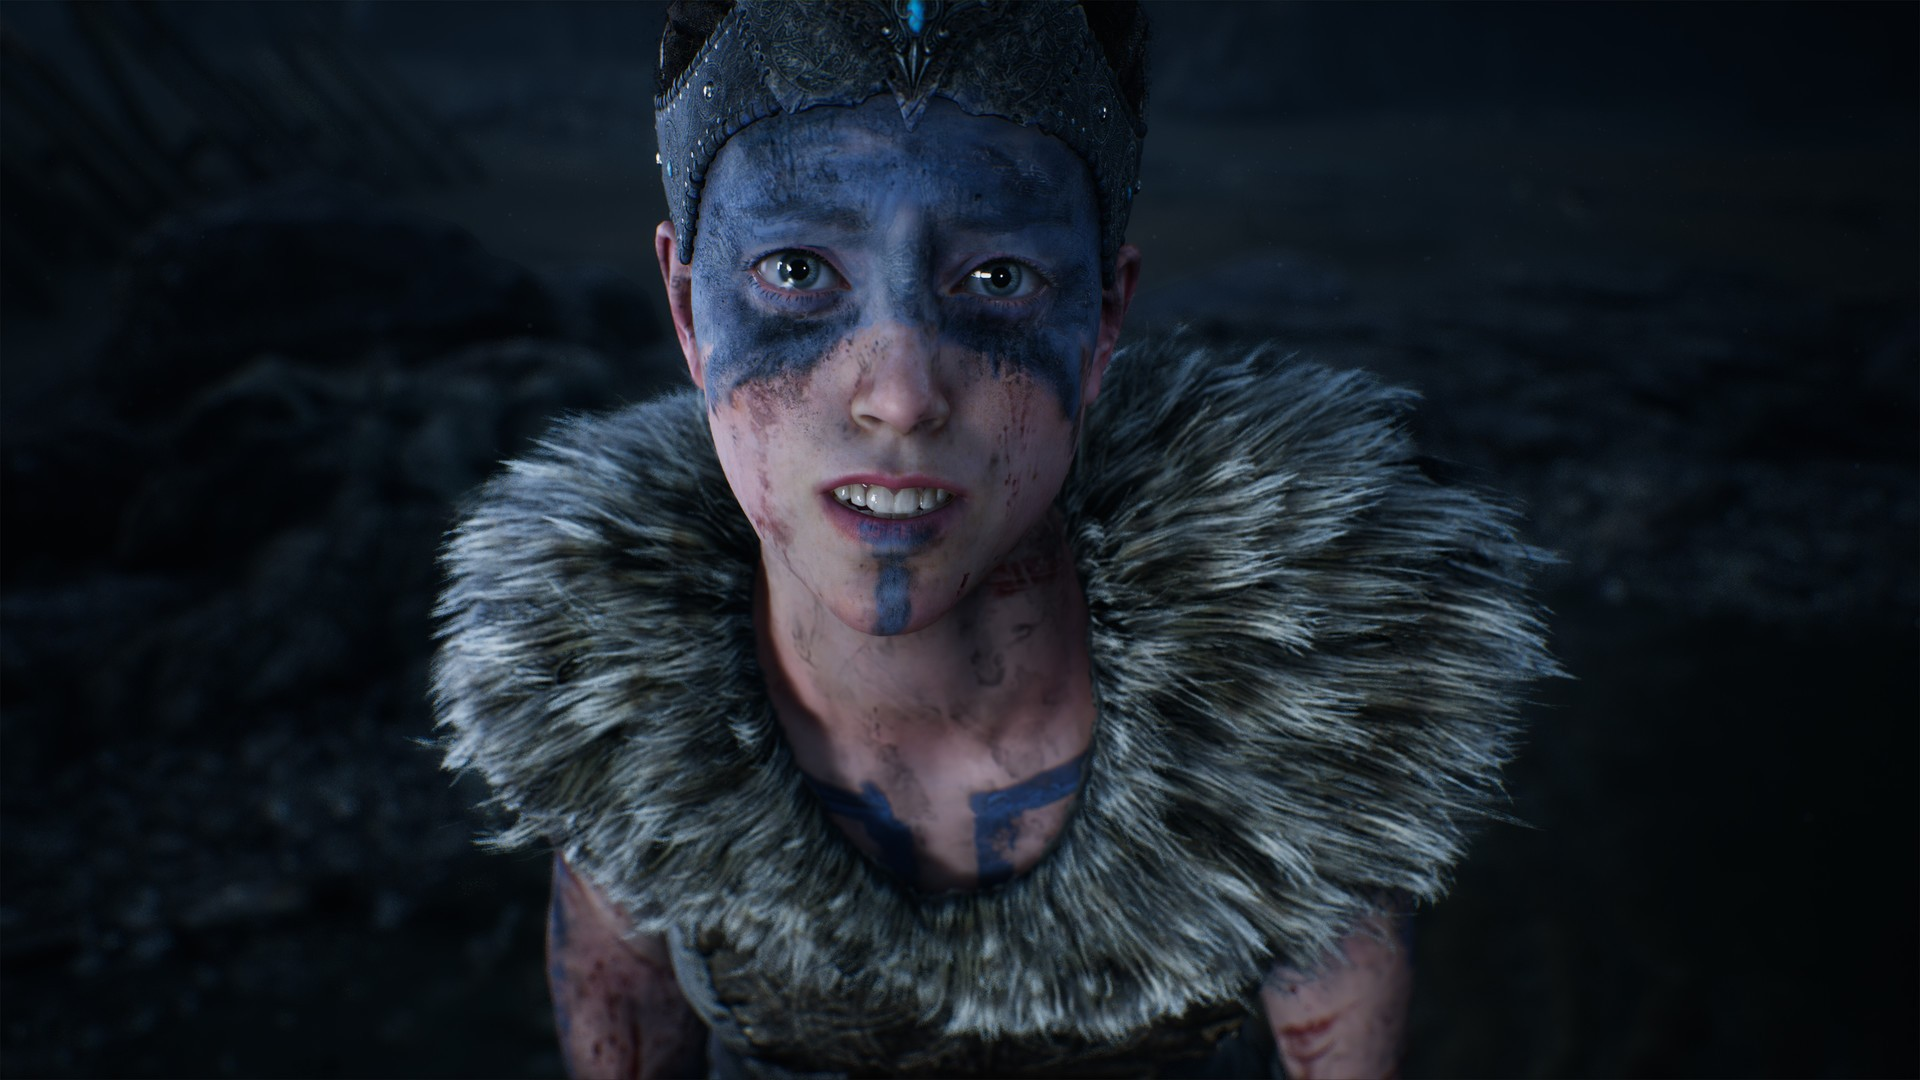 Hellblade Senua's Sacrifice Wallpaper